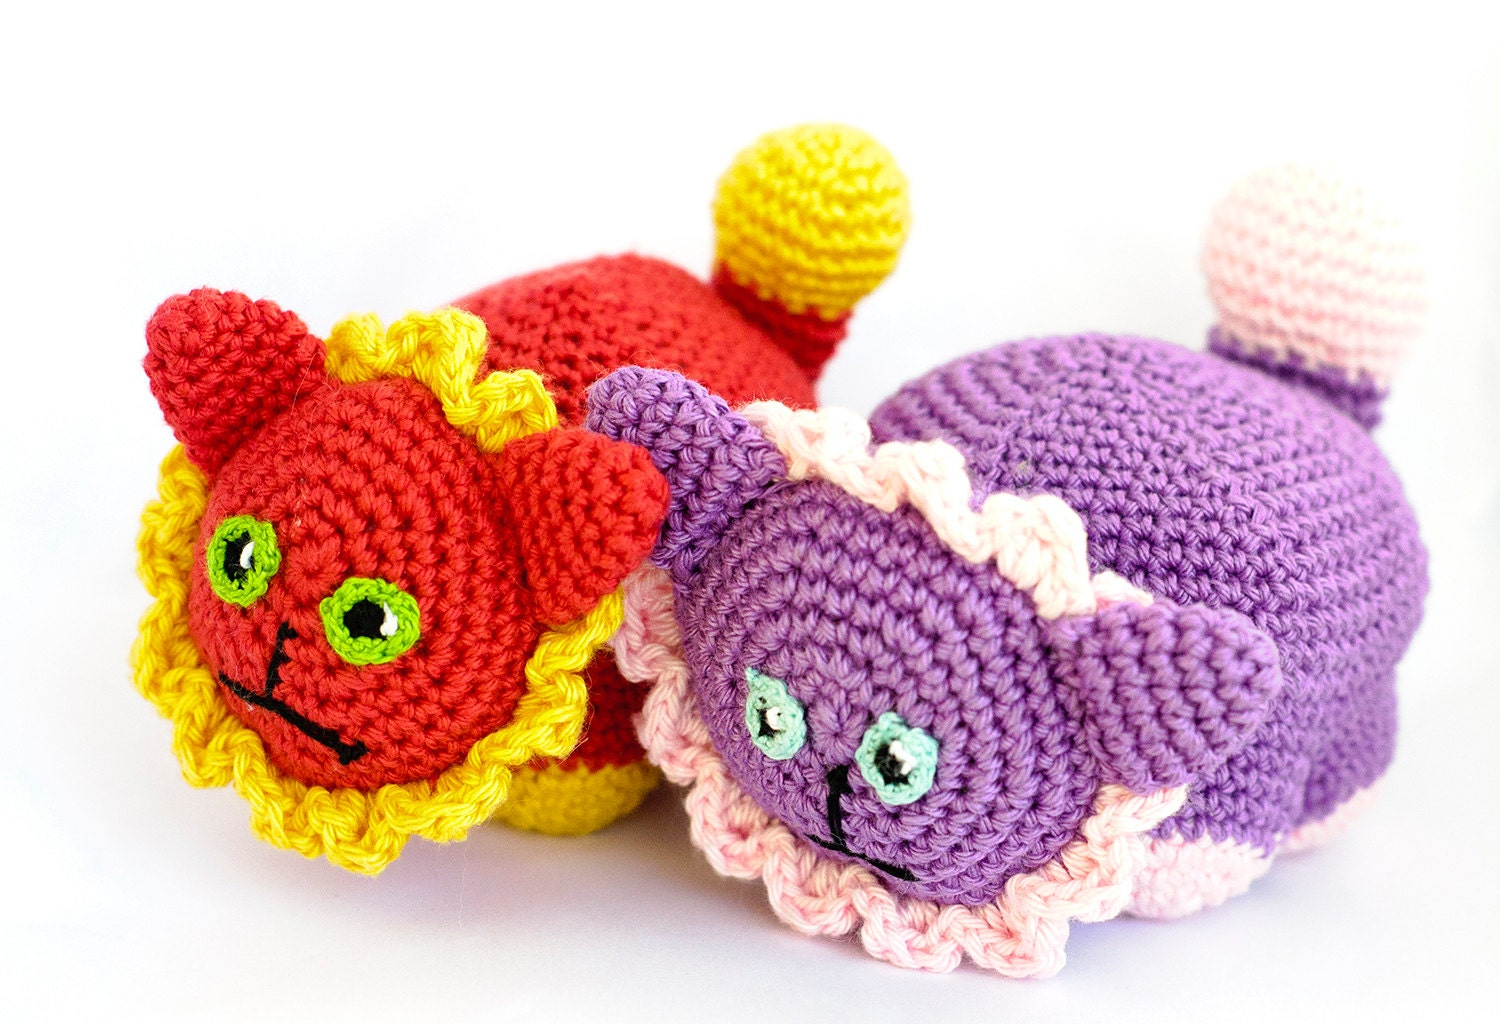 Amigurumi Crochet Pattern Quick Easy Toy Lion Instructions